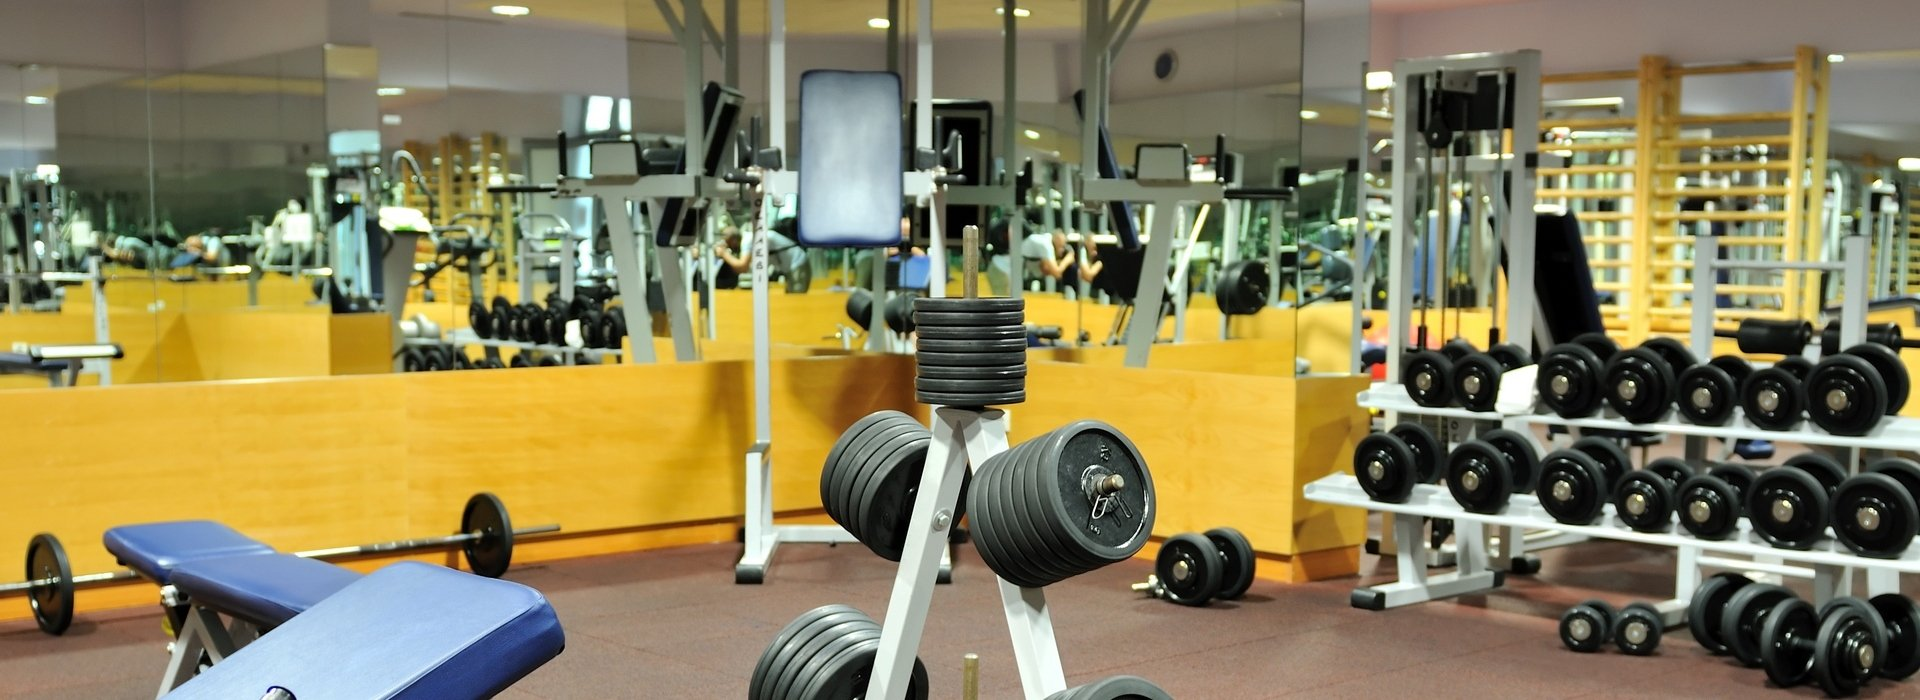 Premier Fitness -  Danubius Hotel Arena